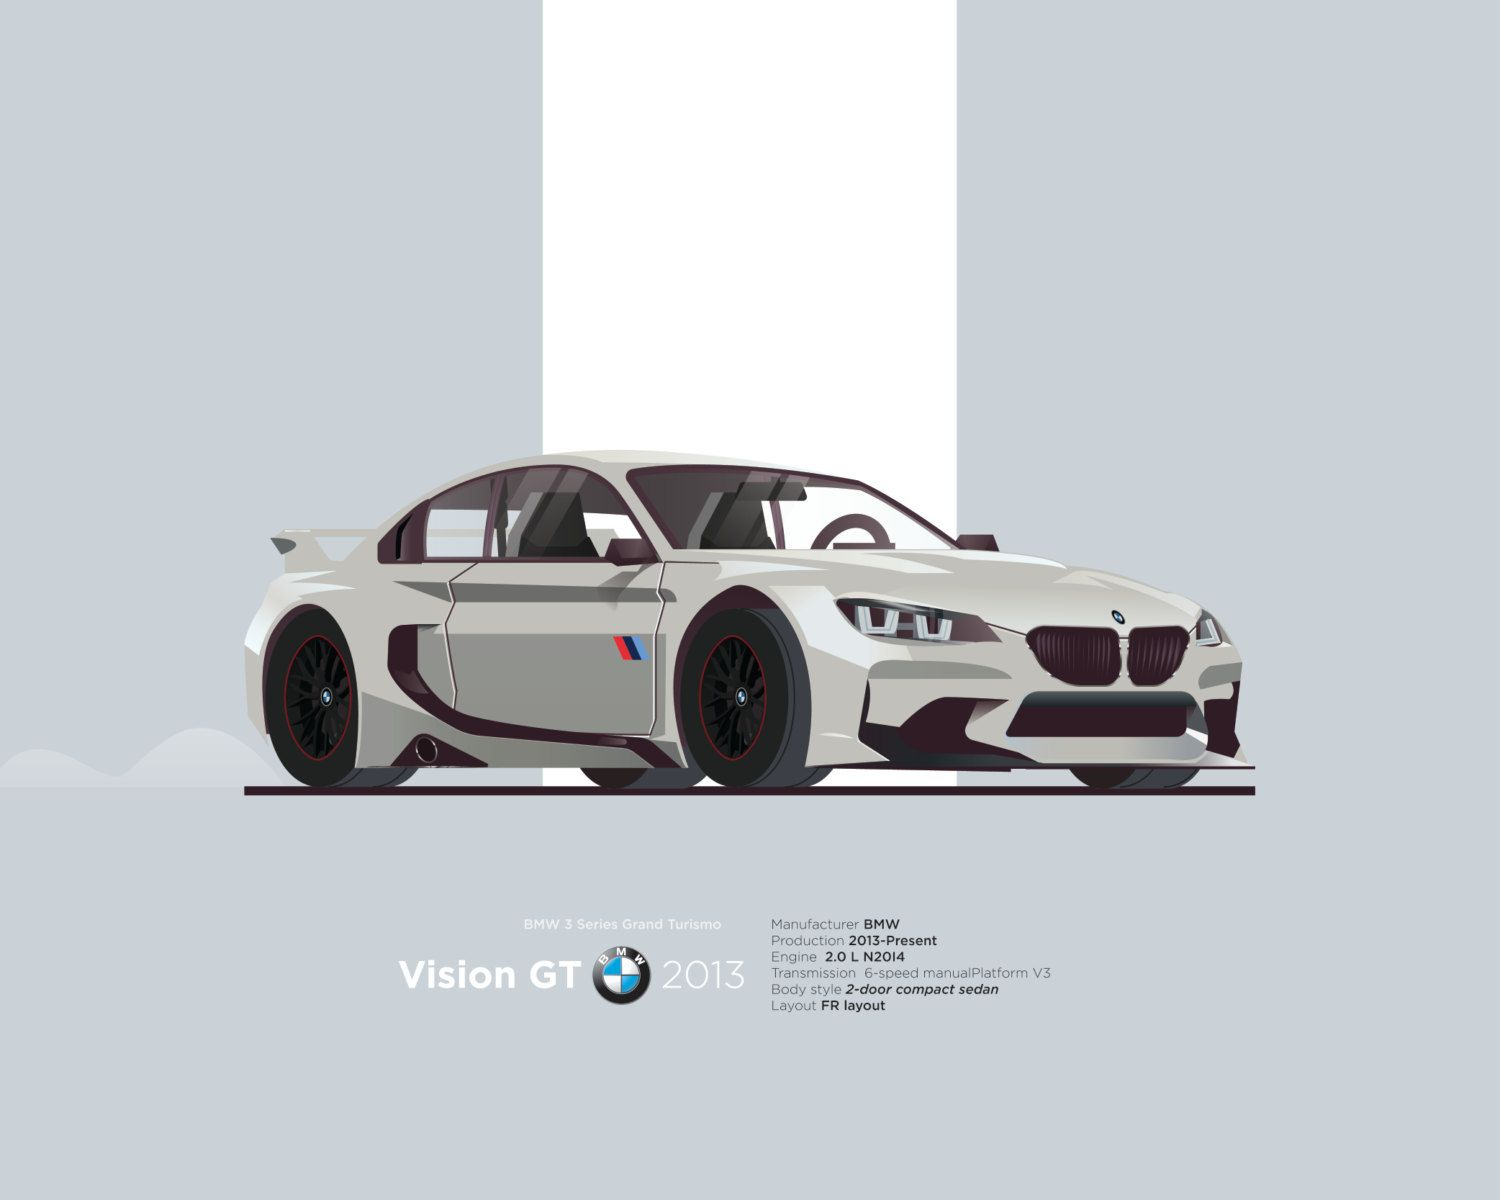 BMW Vision GT Car Poster | Gt cars, Car posters and BMW